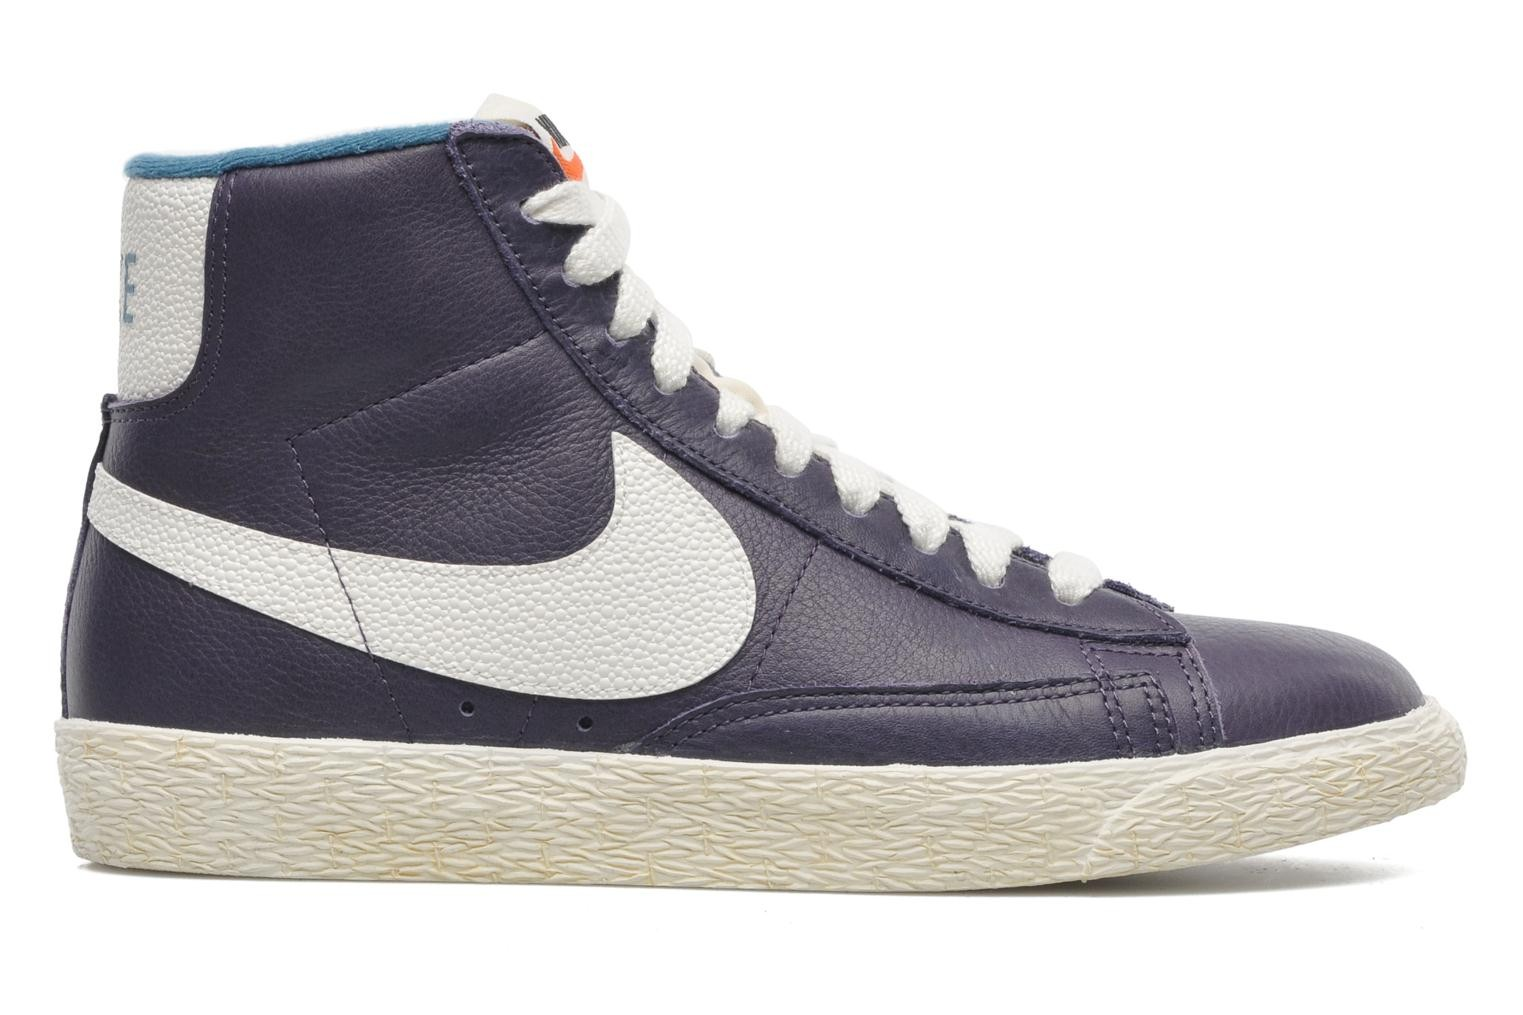 Nike WMNS Blazer Mid Leather (Lthr) Vintage Dark Raisin Sail Sail Riftblue Women's Shoe